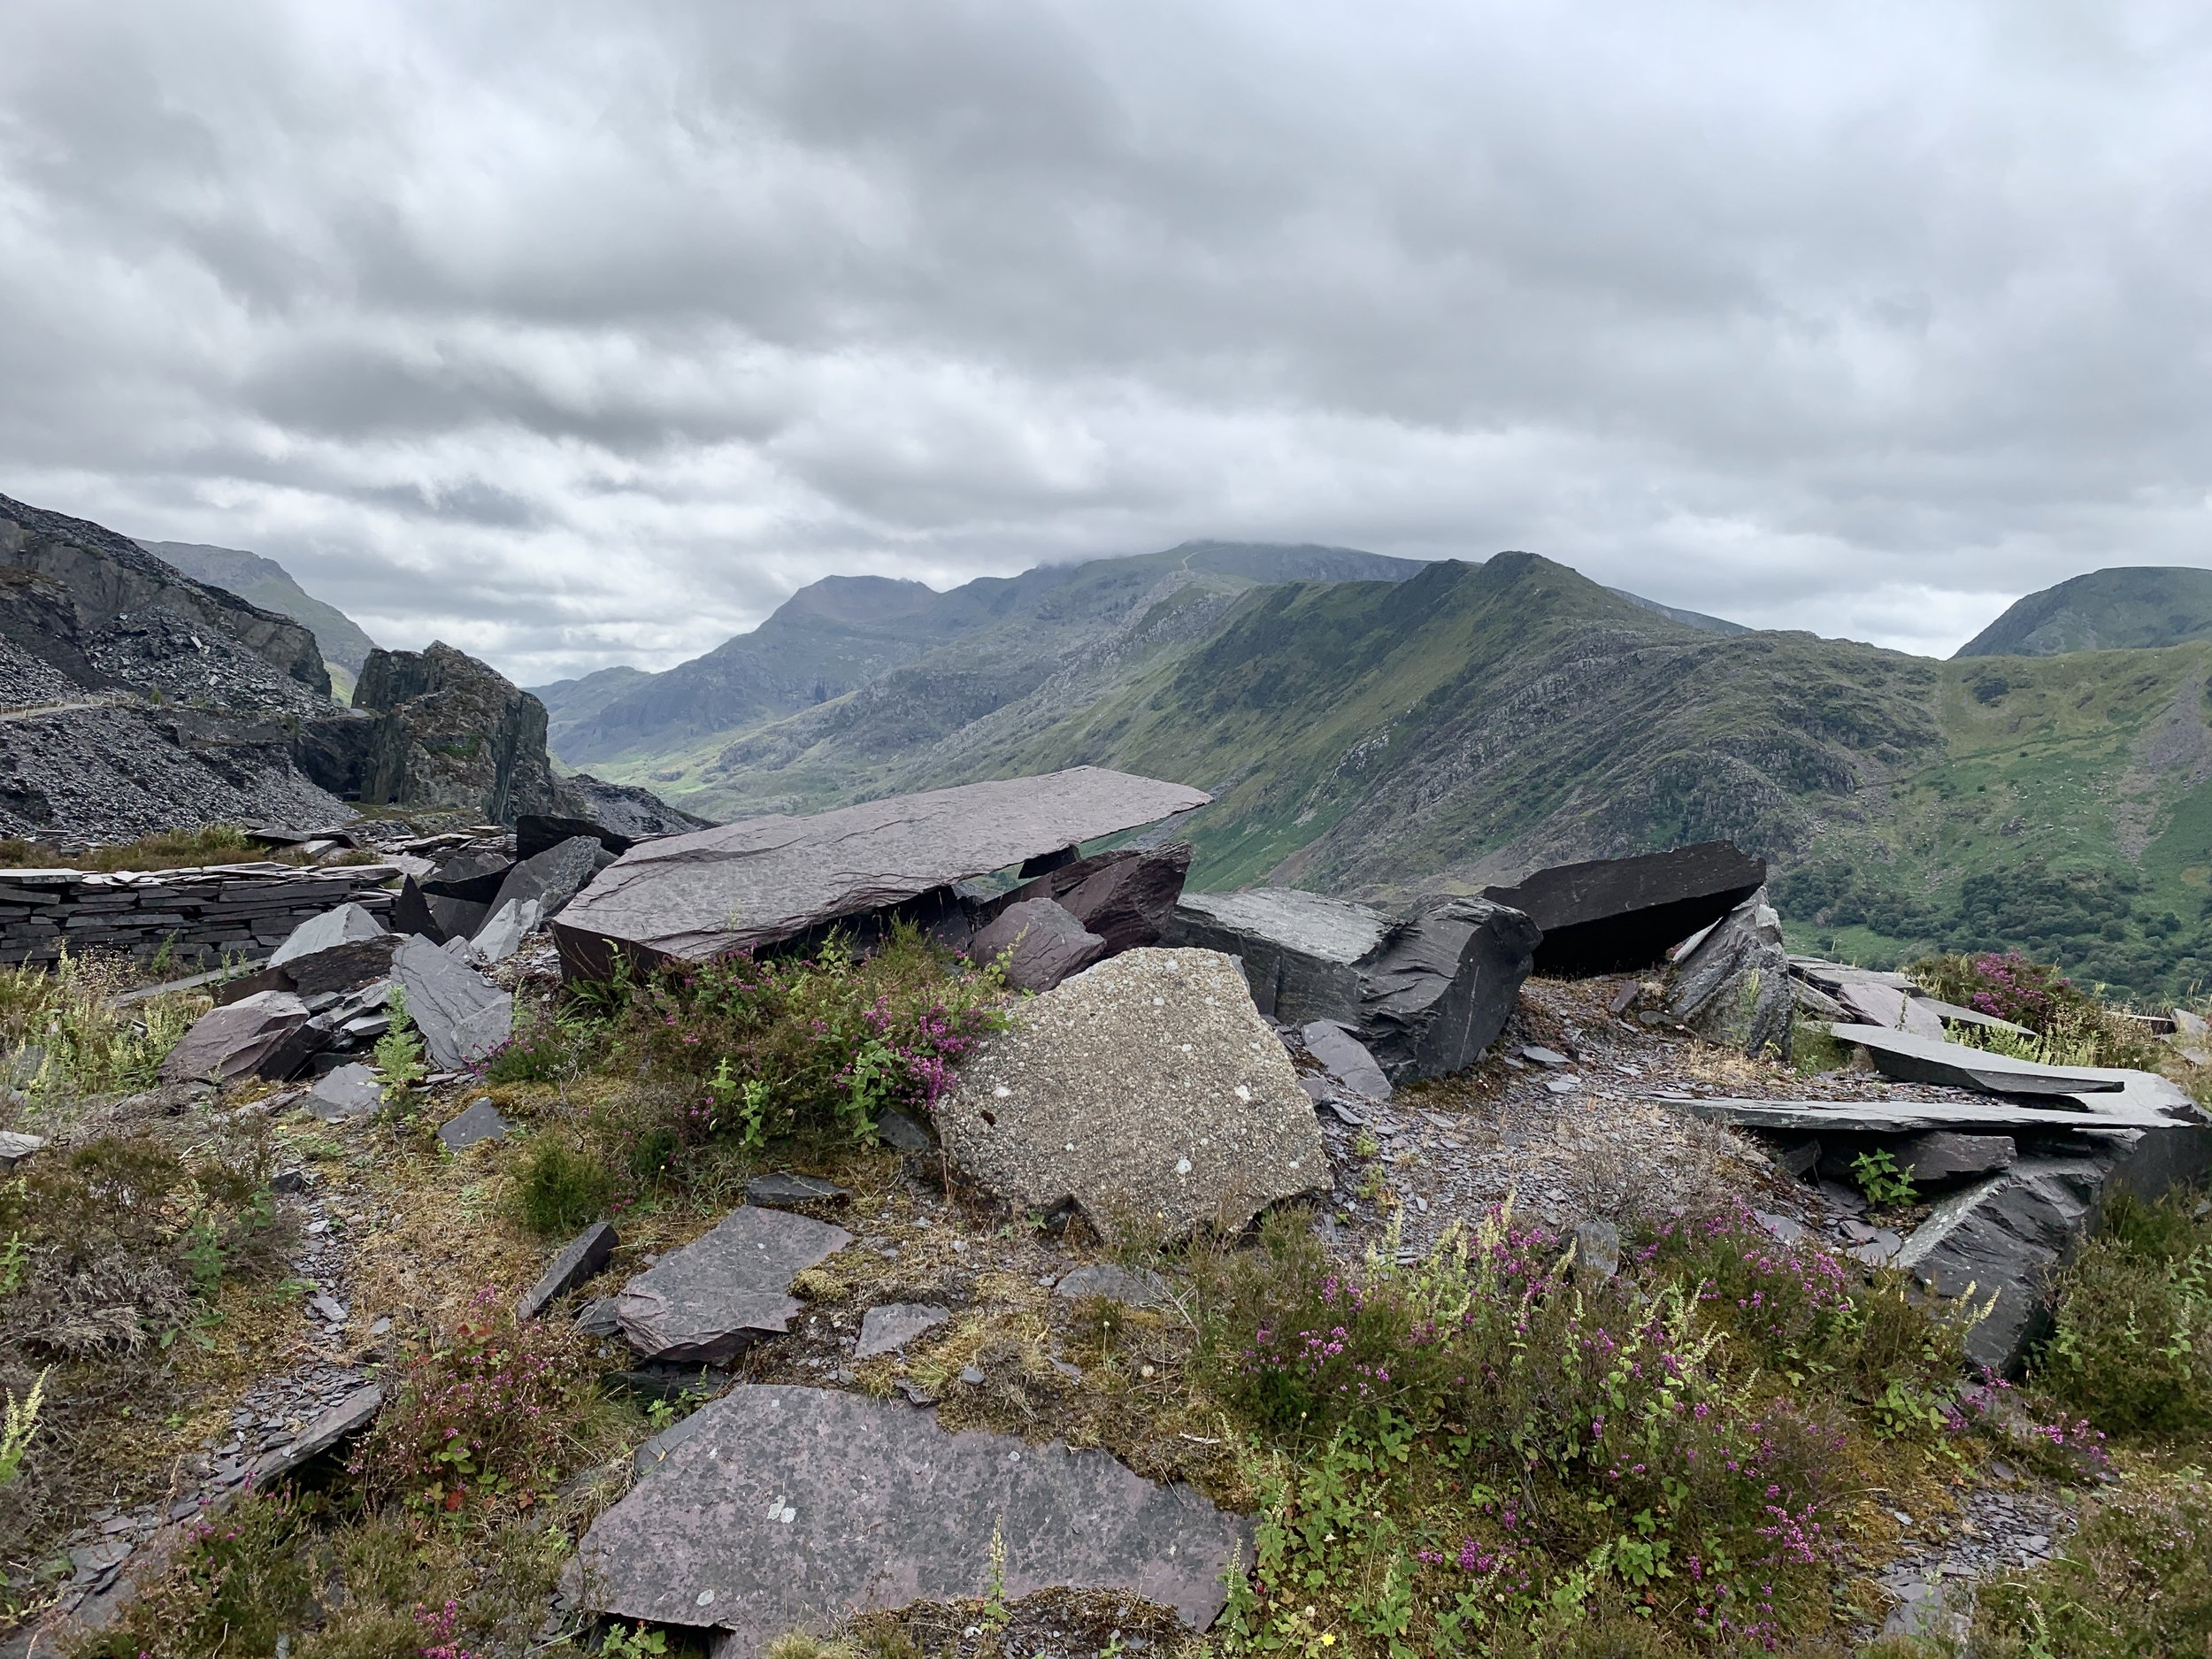 Taken Above Llanberis At Dinorwic This Is An iPhone Shot Looking Towards Snowdon Which Is In Clag